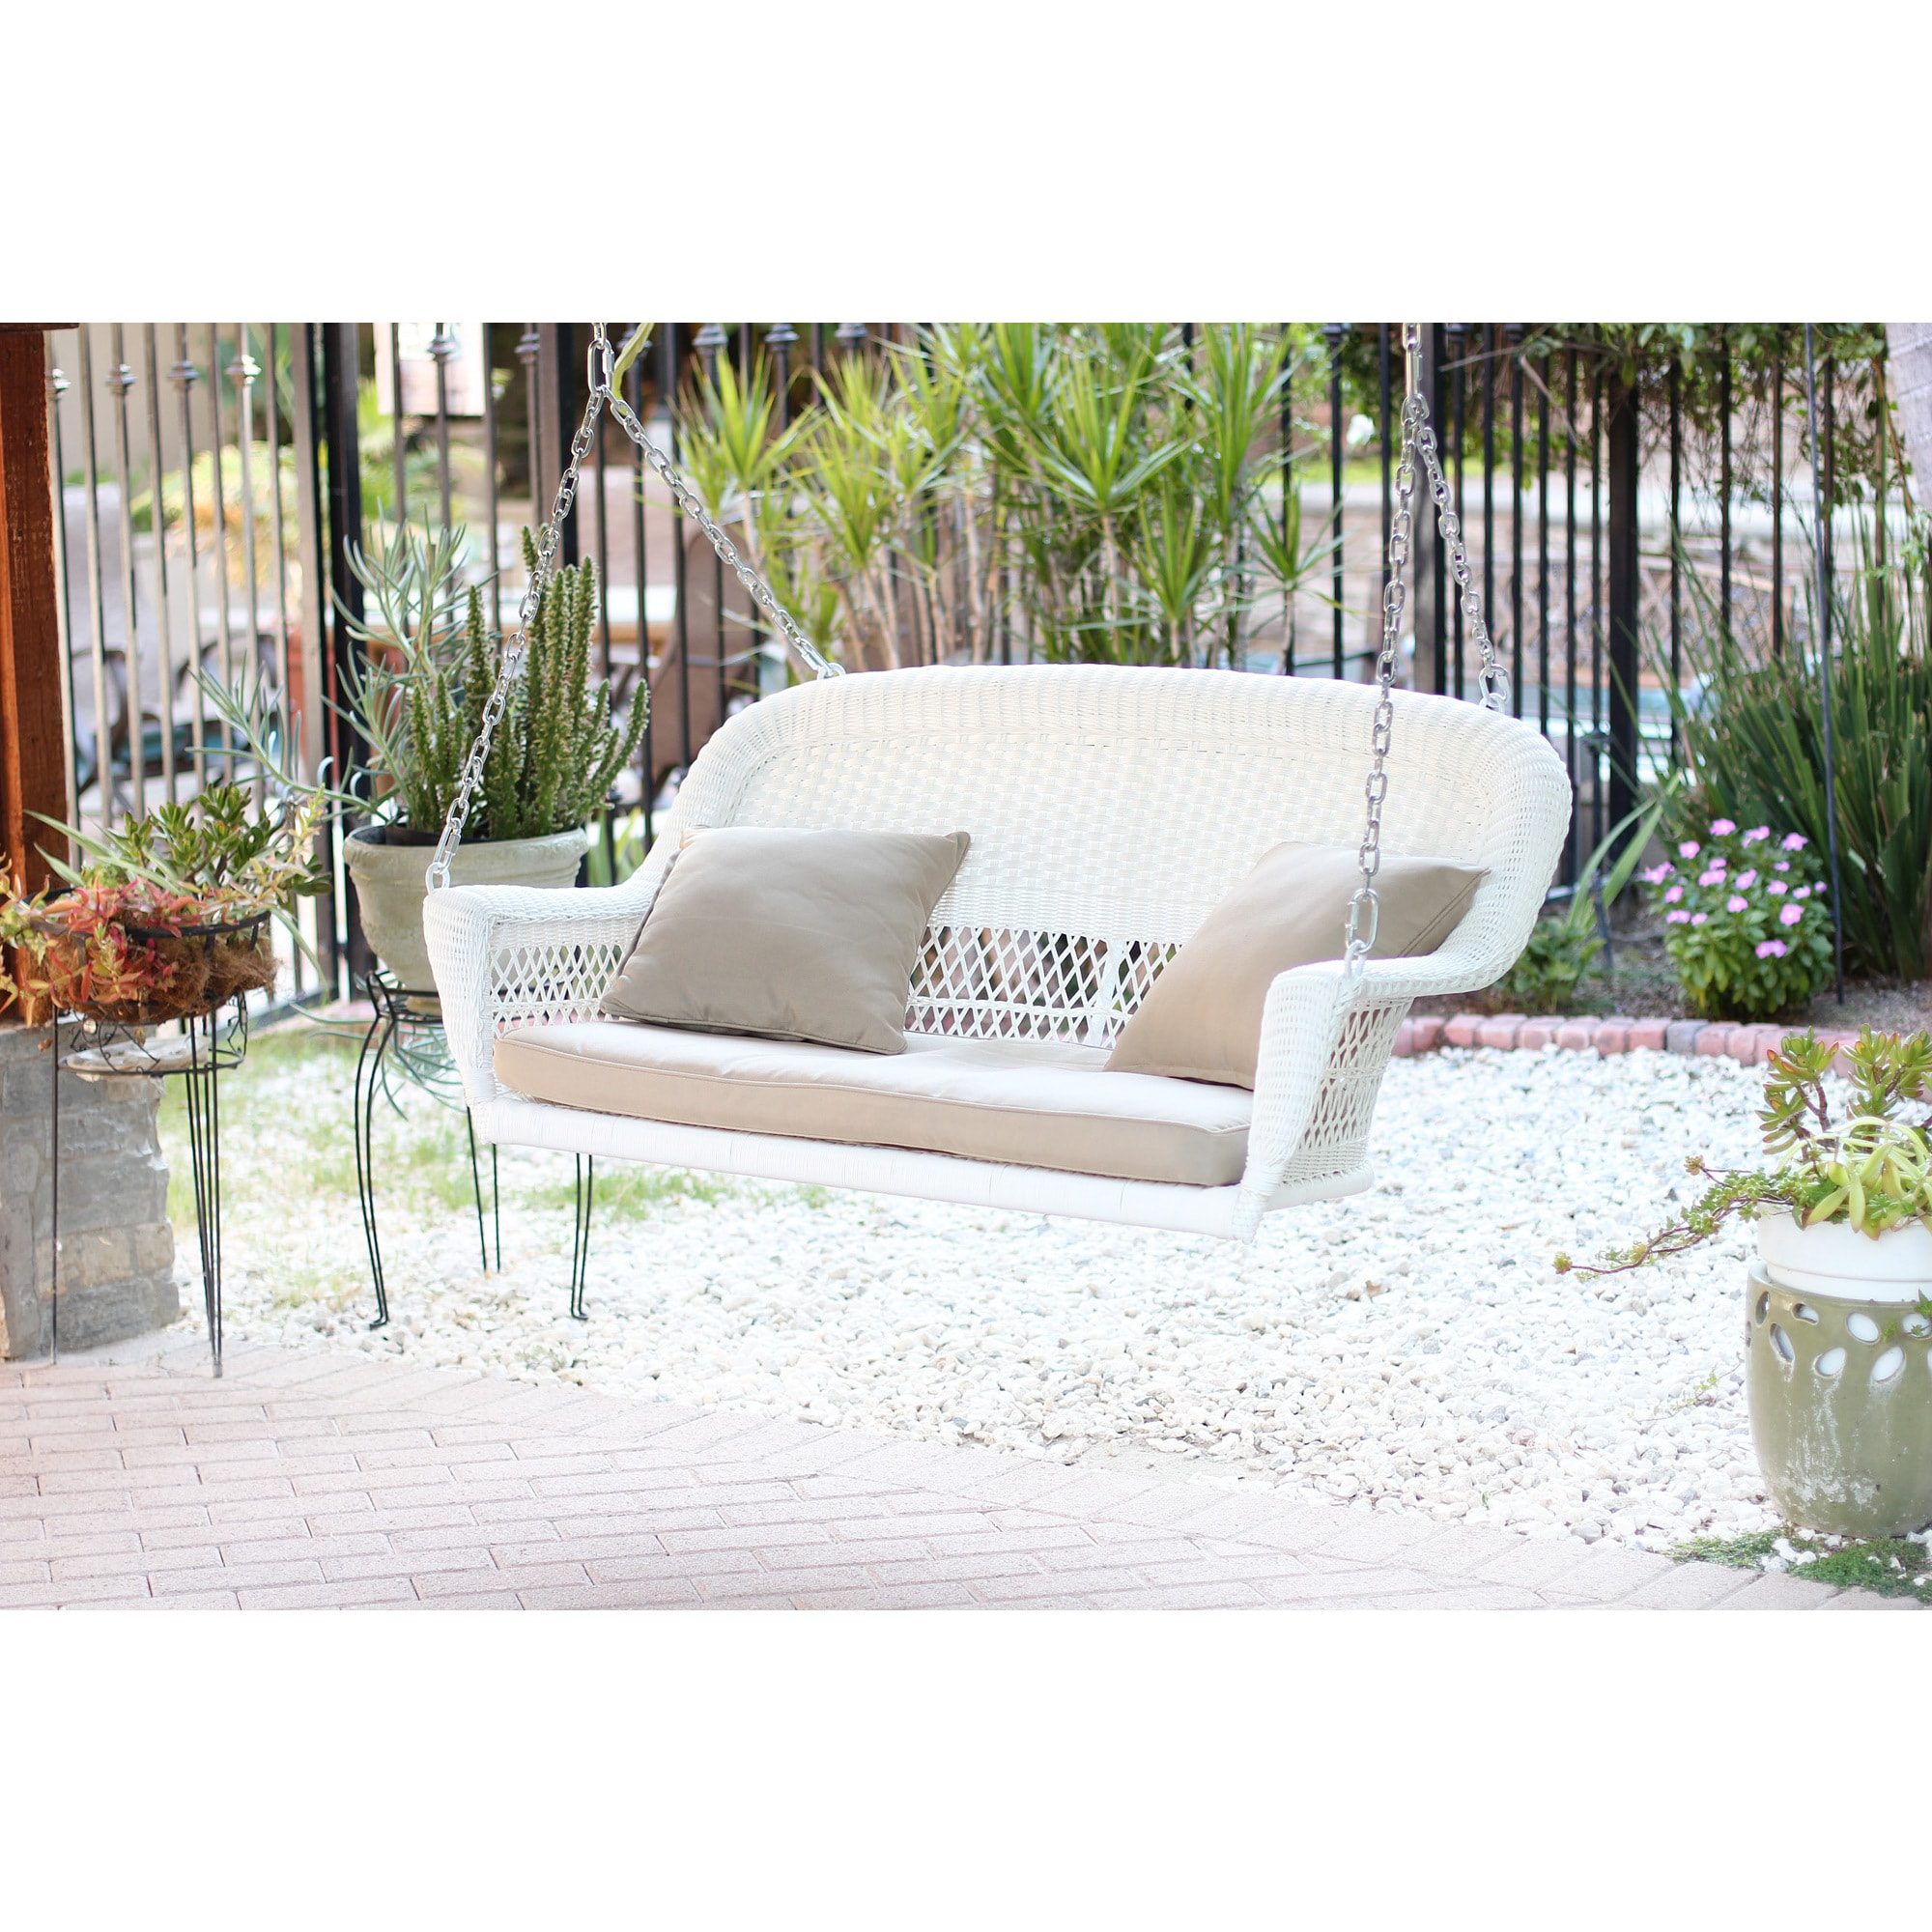 White Resin Wicker Porch Swing with Cushions Free Shipping Today